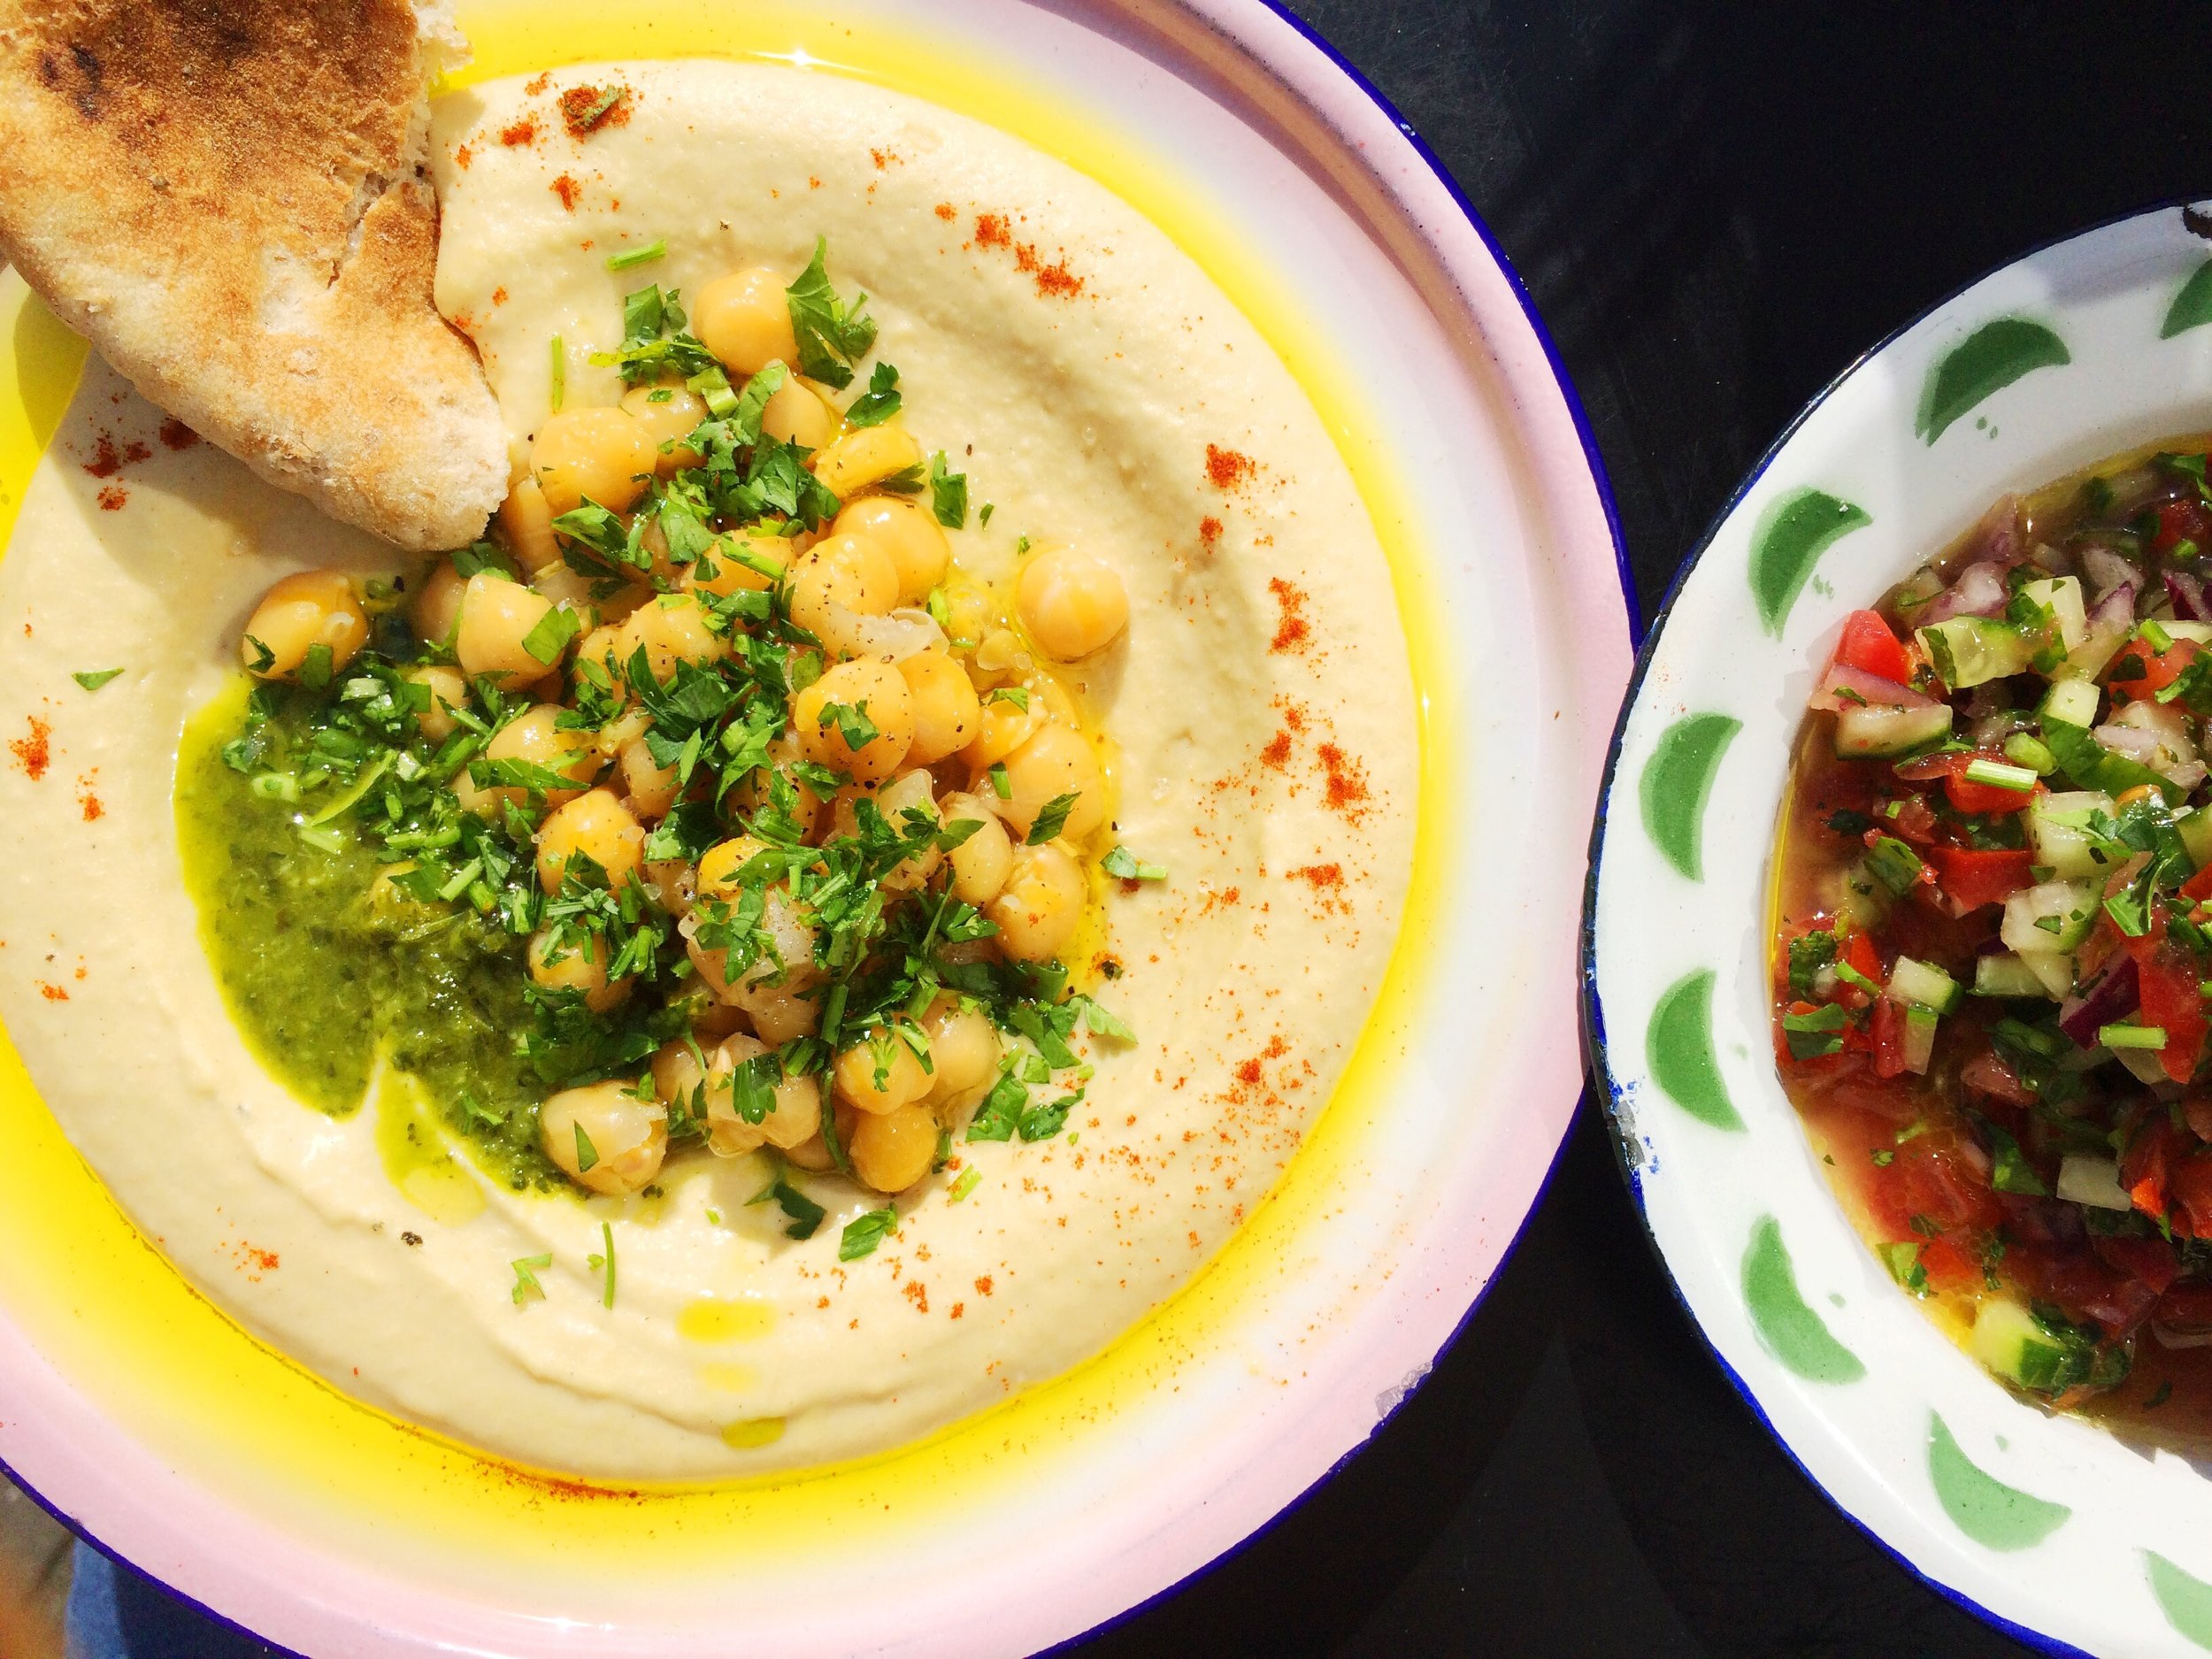 Give me all the hummus!